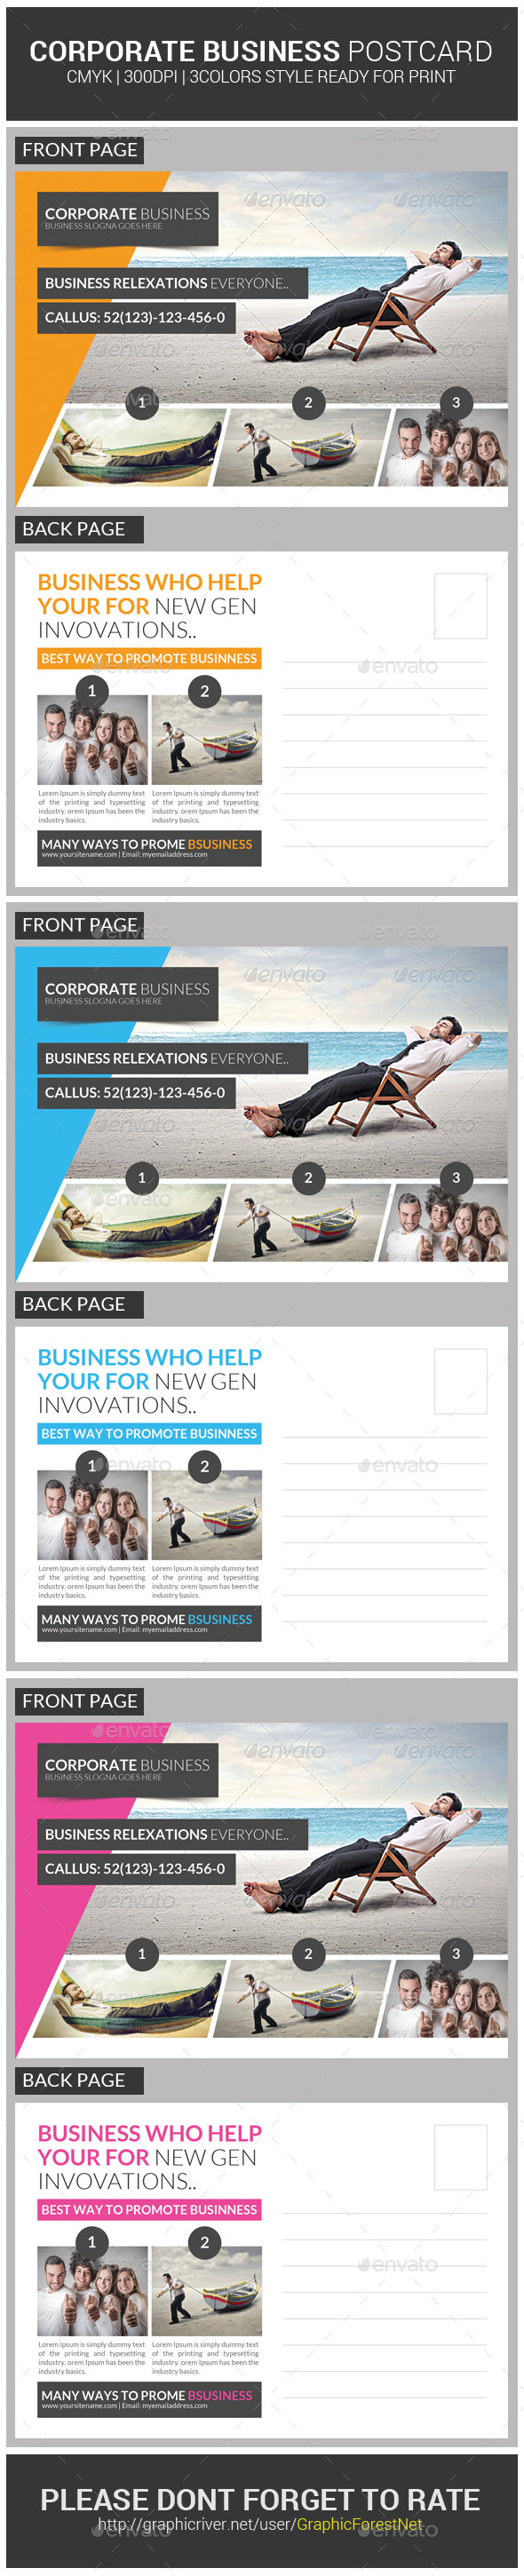 Corporate Business Postcard Template PSD Download Here Graphicriver